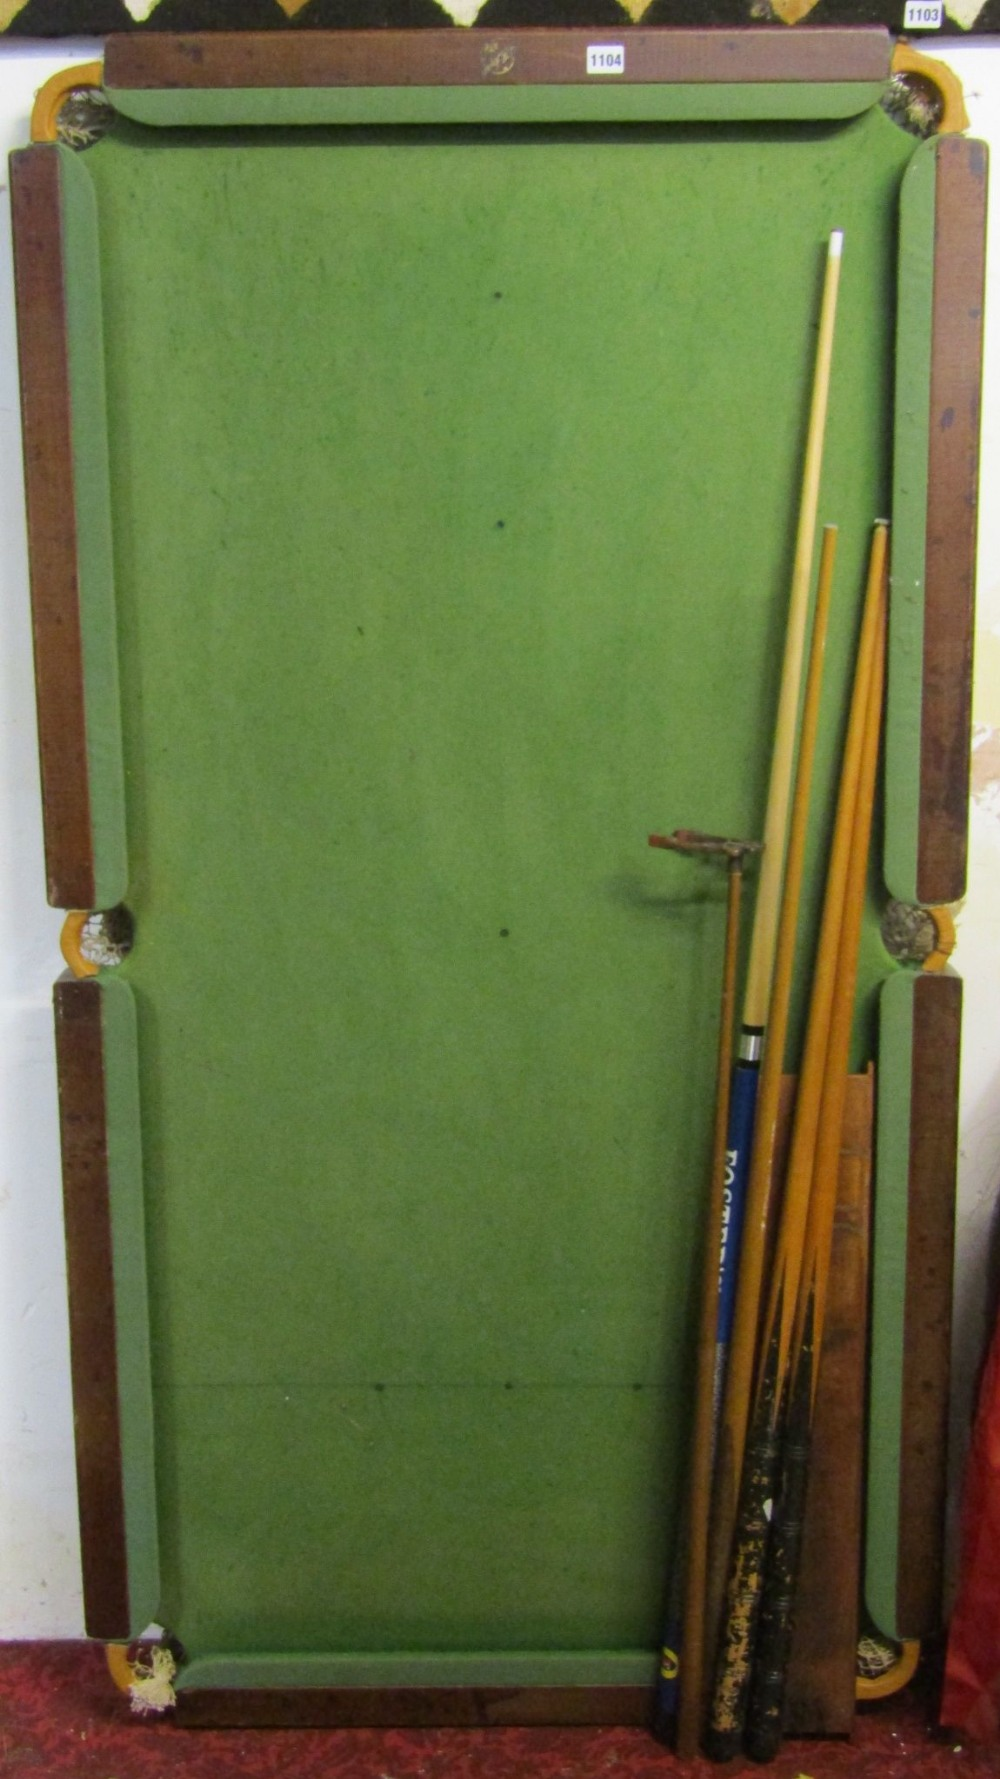 Lot 1104 - F H Ayres quarter size slate bed snooker table and accessories